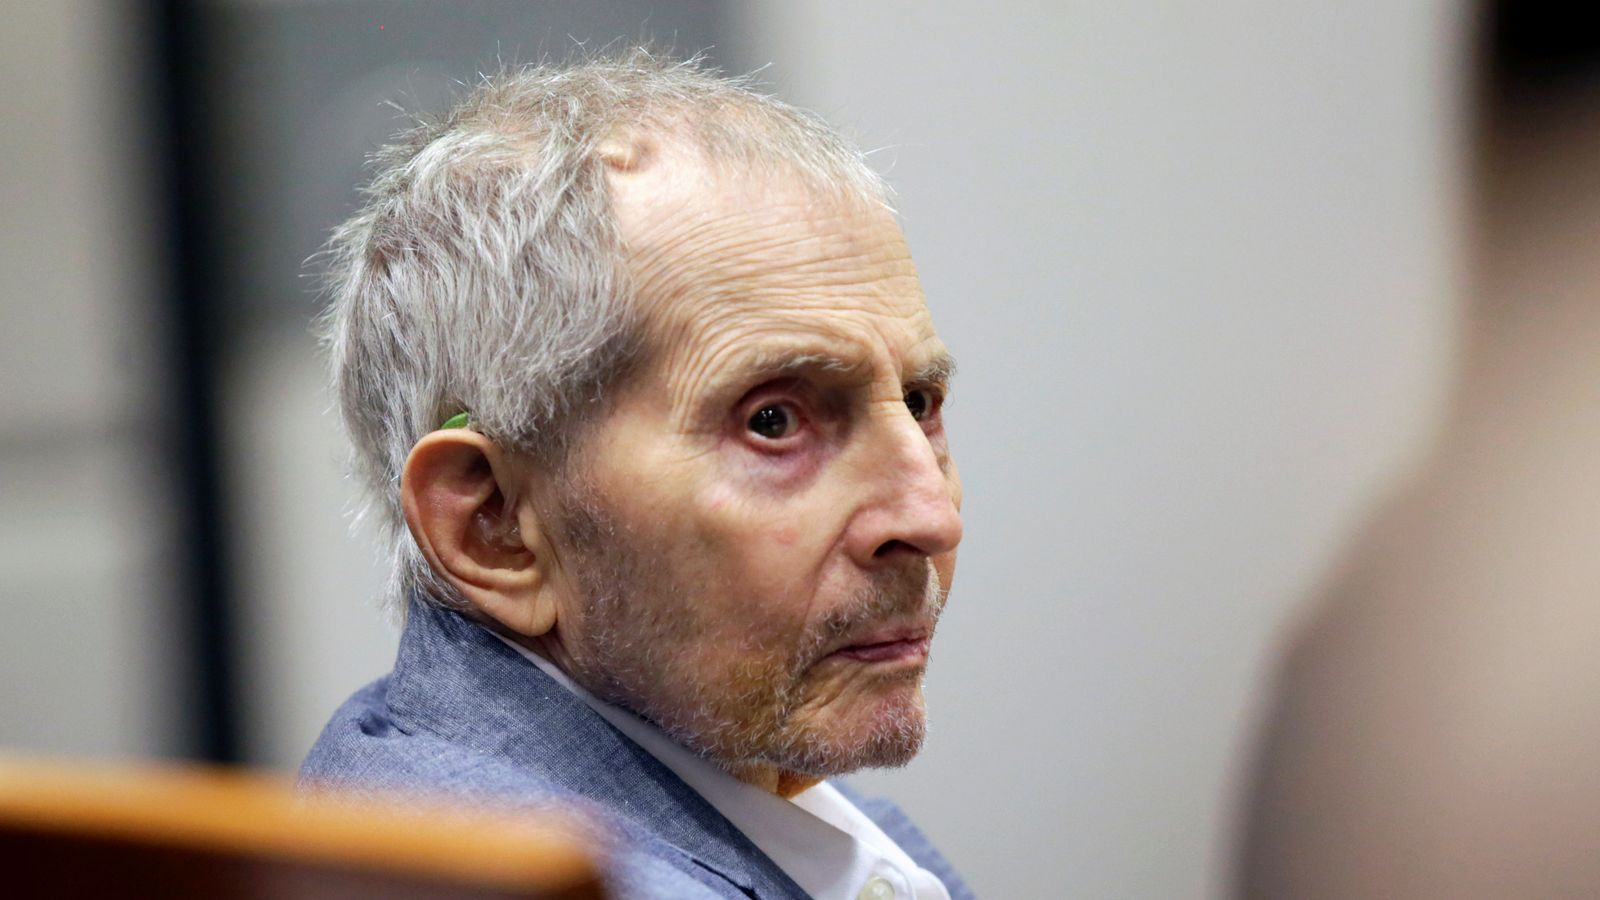 Robert Durst: 'The Jinx' star charged with 1982 murder of wife Kathie Durst